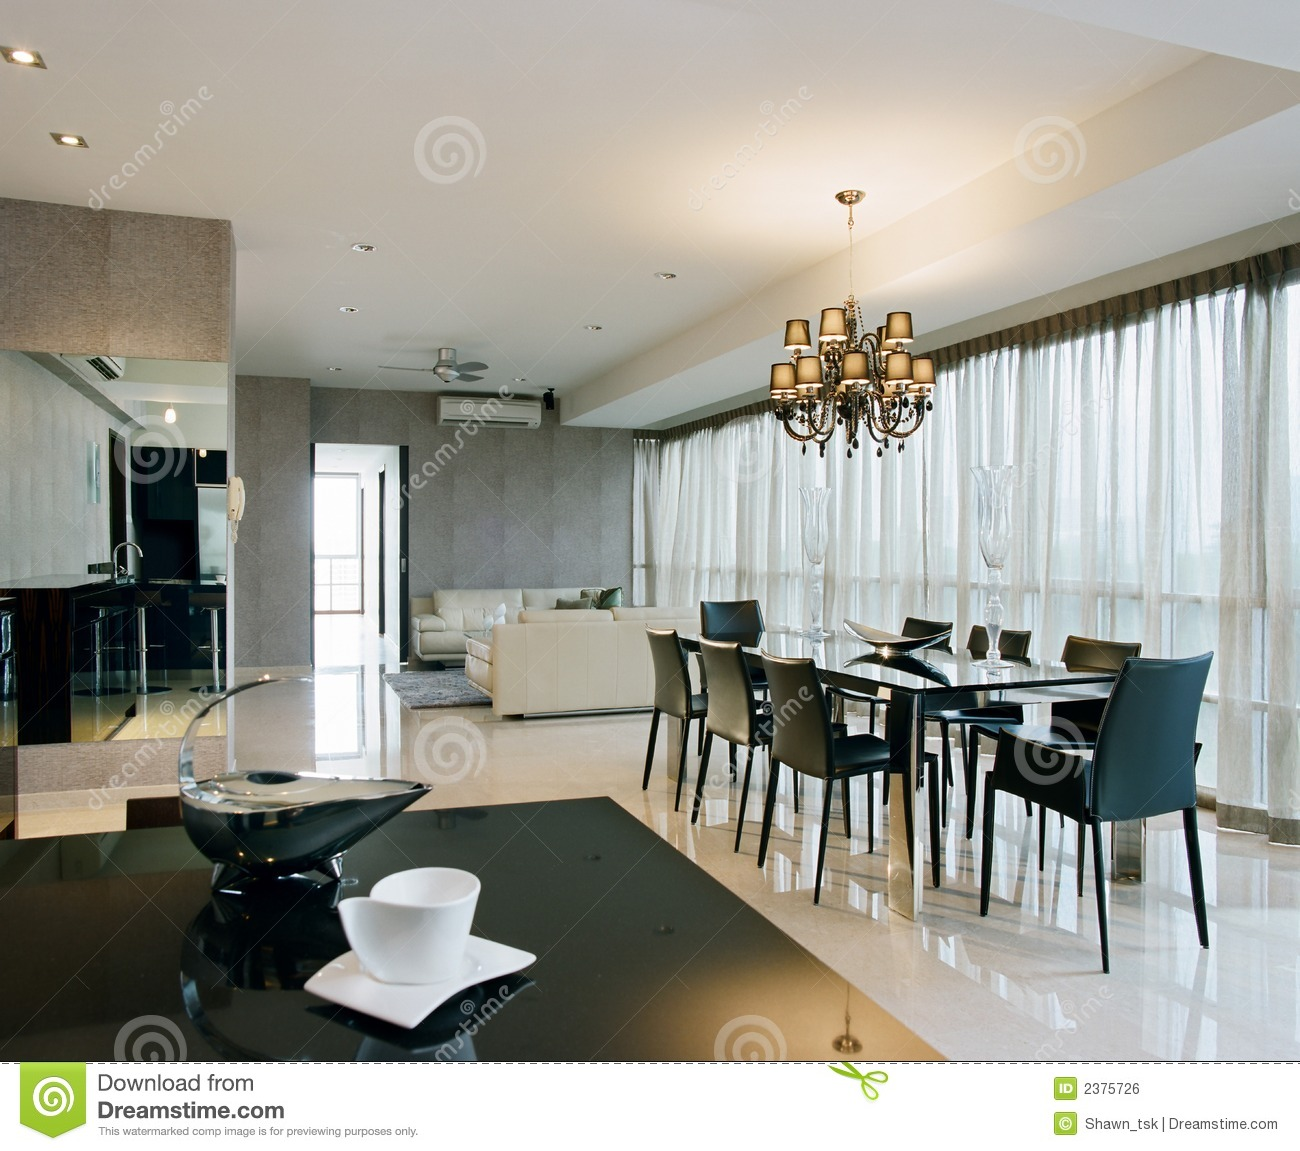 Interior design dining area royalty free stock image for Dining area pictures